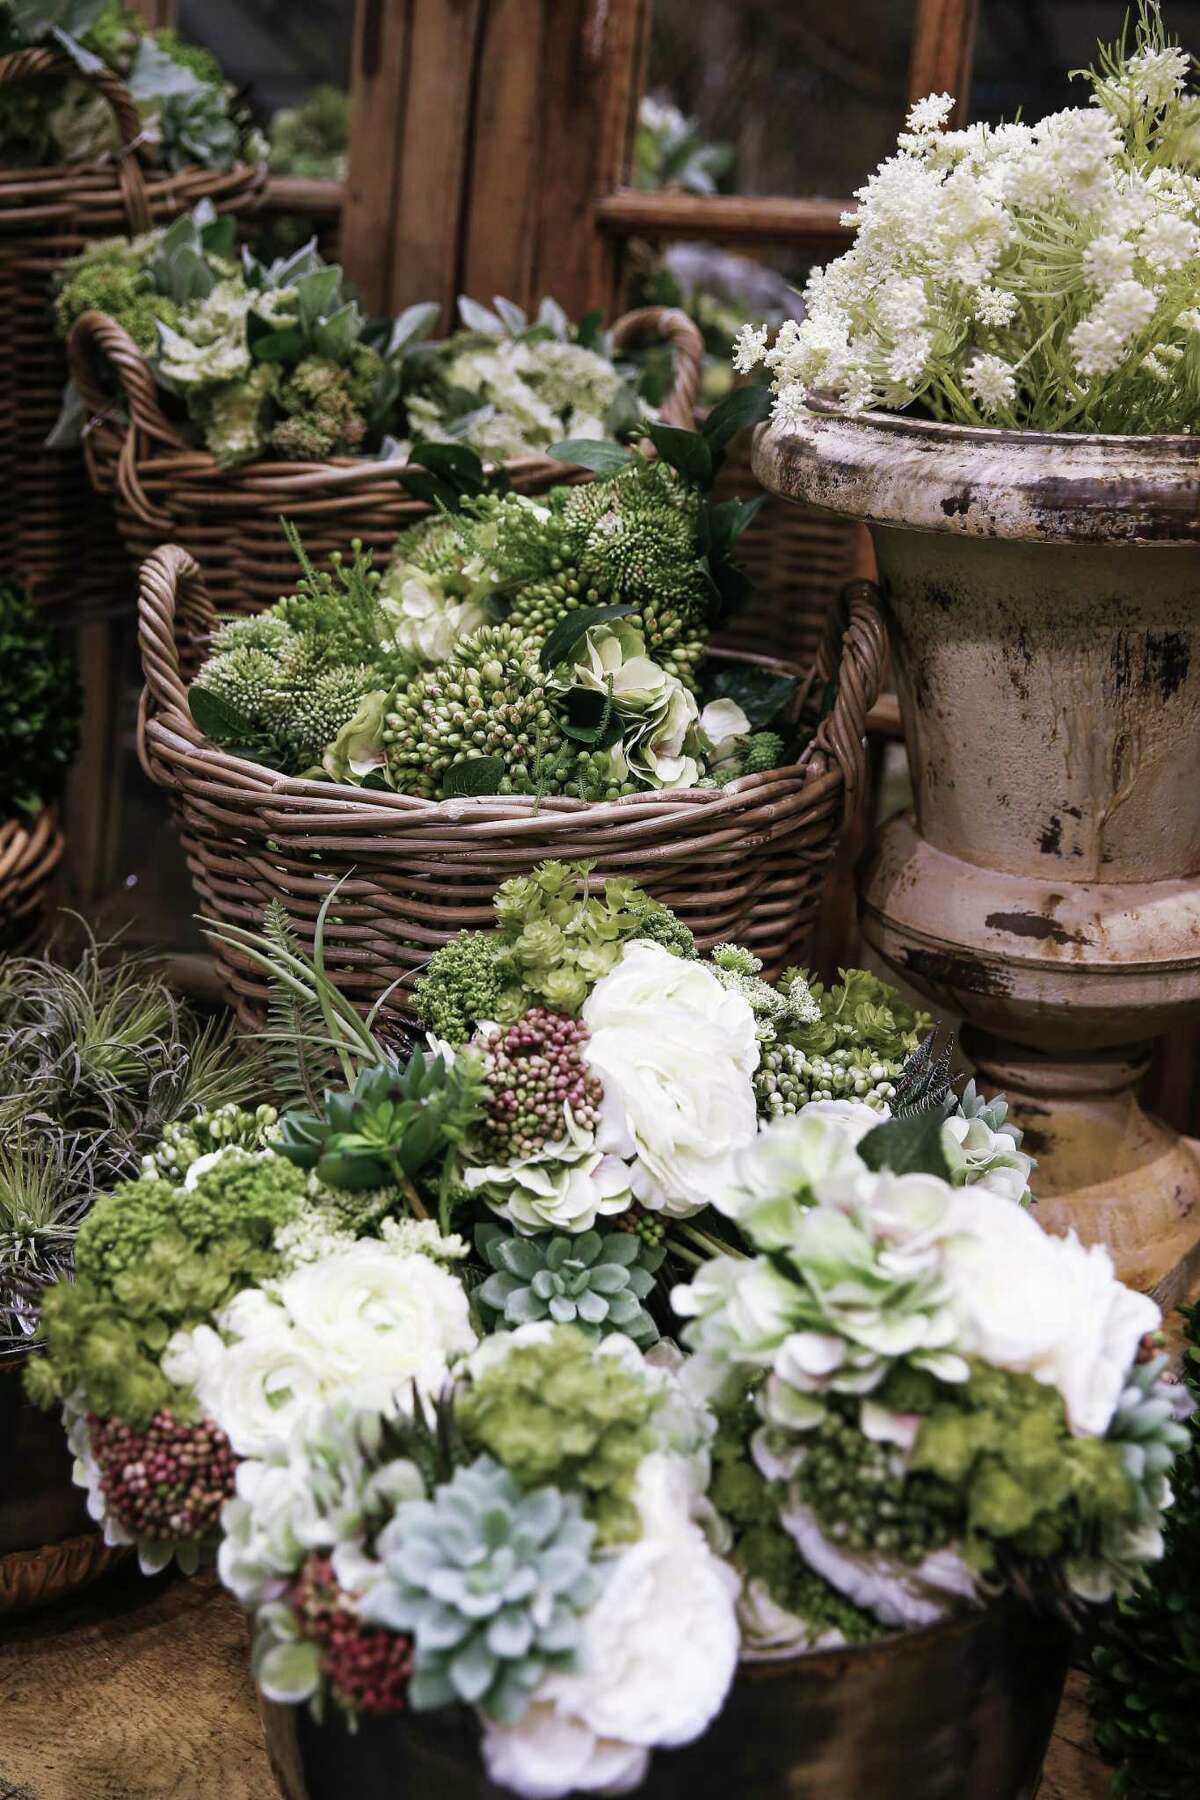 Fake flowers sit on display in Kuhl-Linscomb's faux flower department Wednesday Aug. 22, 2018 in Houston. With permanent botanicals becoming increasingly realistic, interior designers are relying more heavily on them than ever.